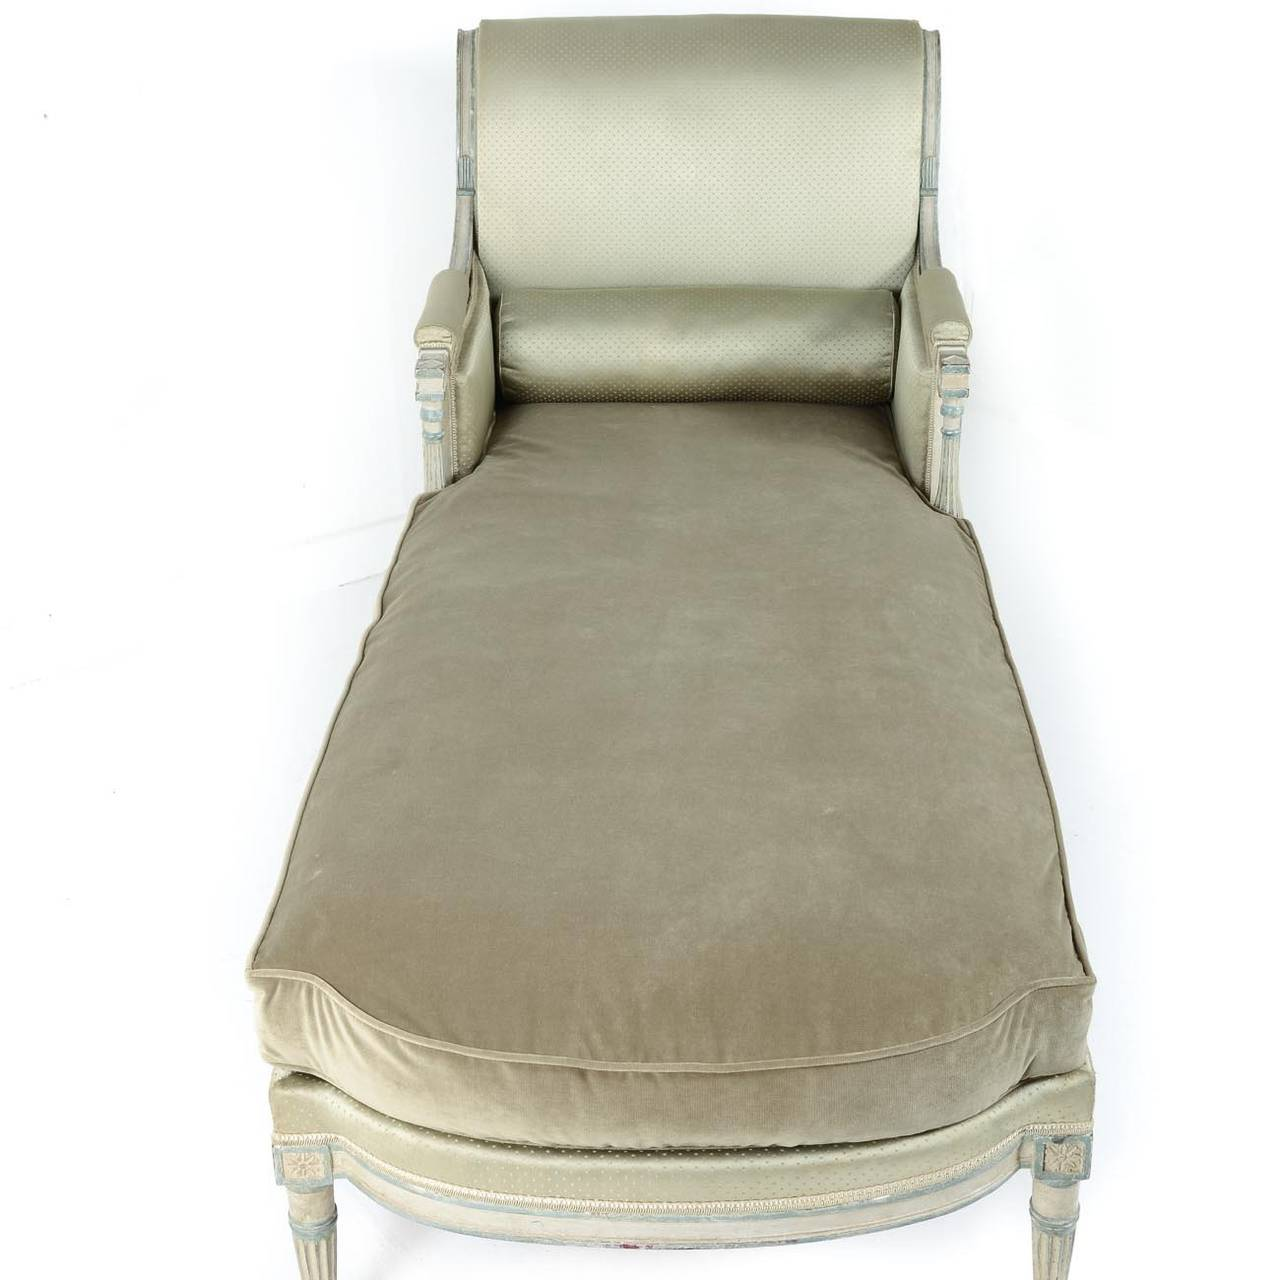 French directoire chaise longue circa 1840 at 1stdibs for Chaise longue france